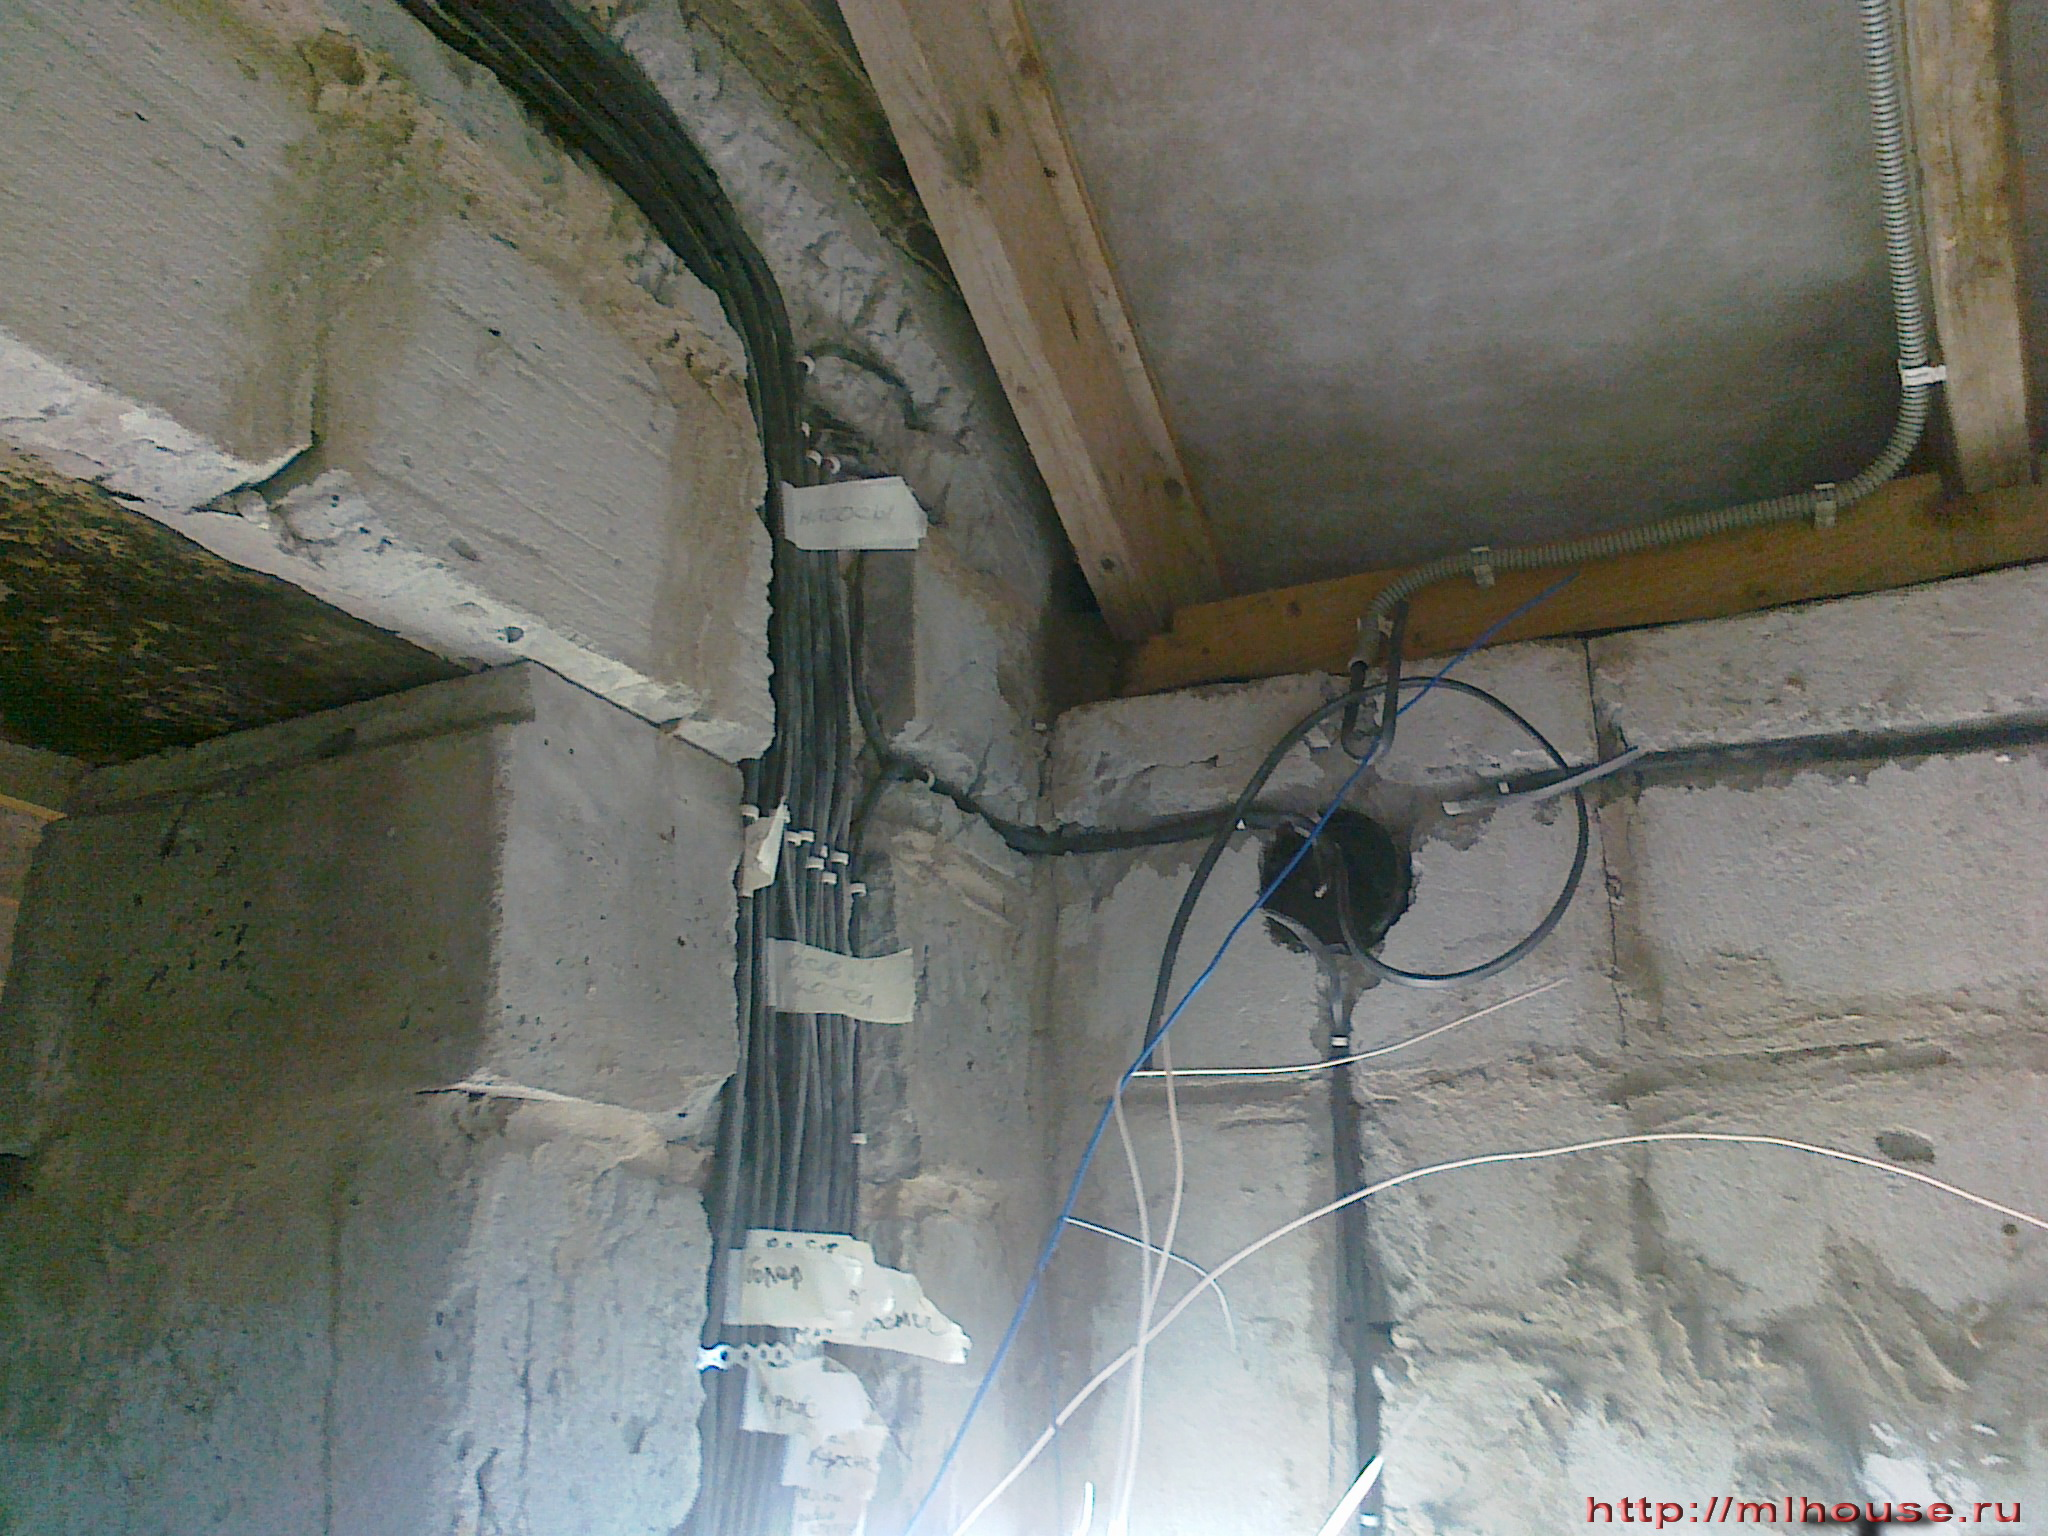 Dacha House With His Hands Wirirng Electrical Wiring In Cinder Block Walls Grounding System Was Installed